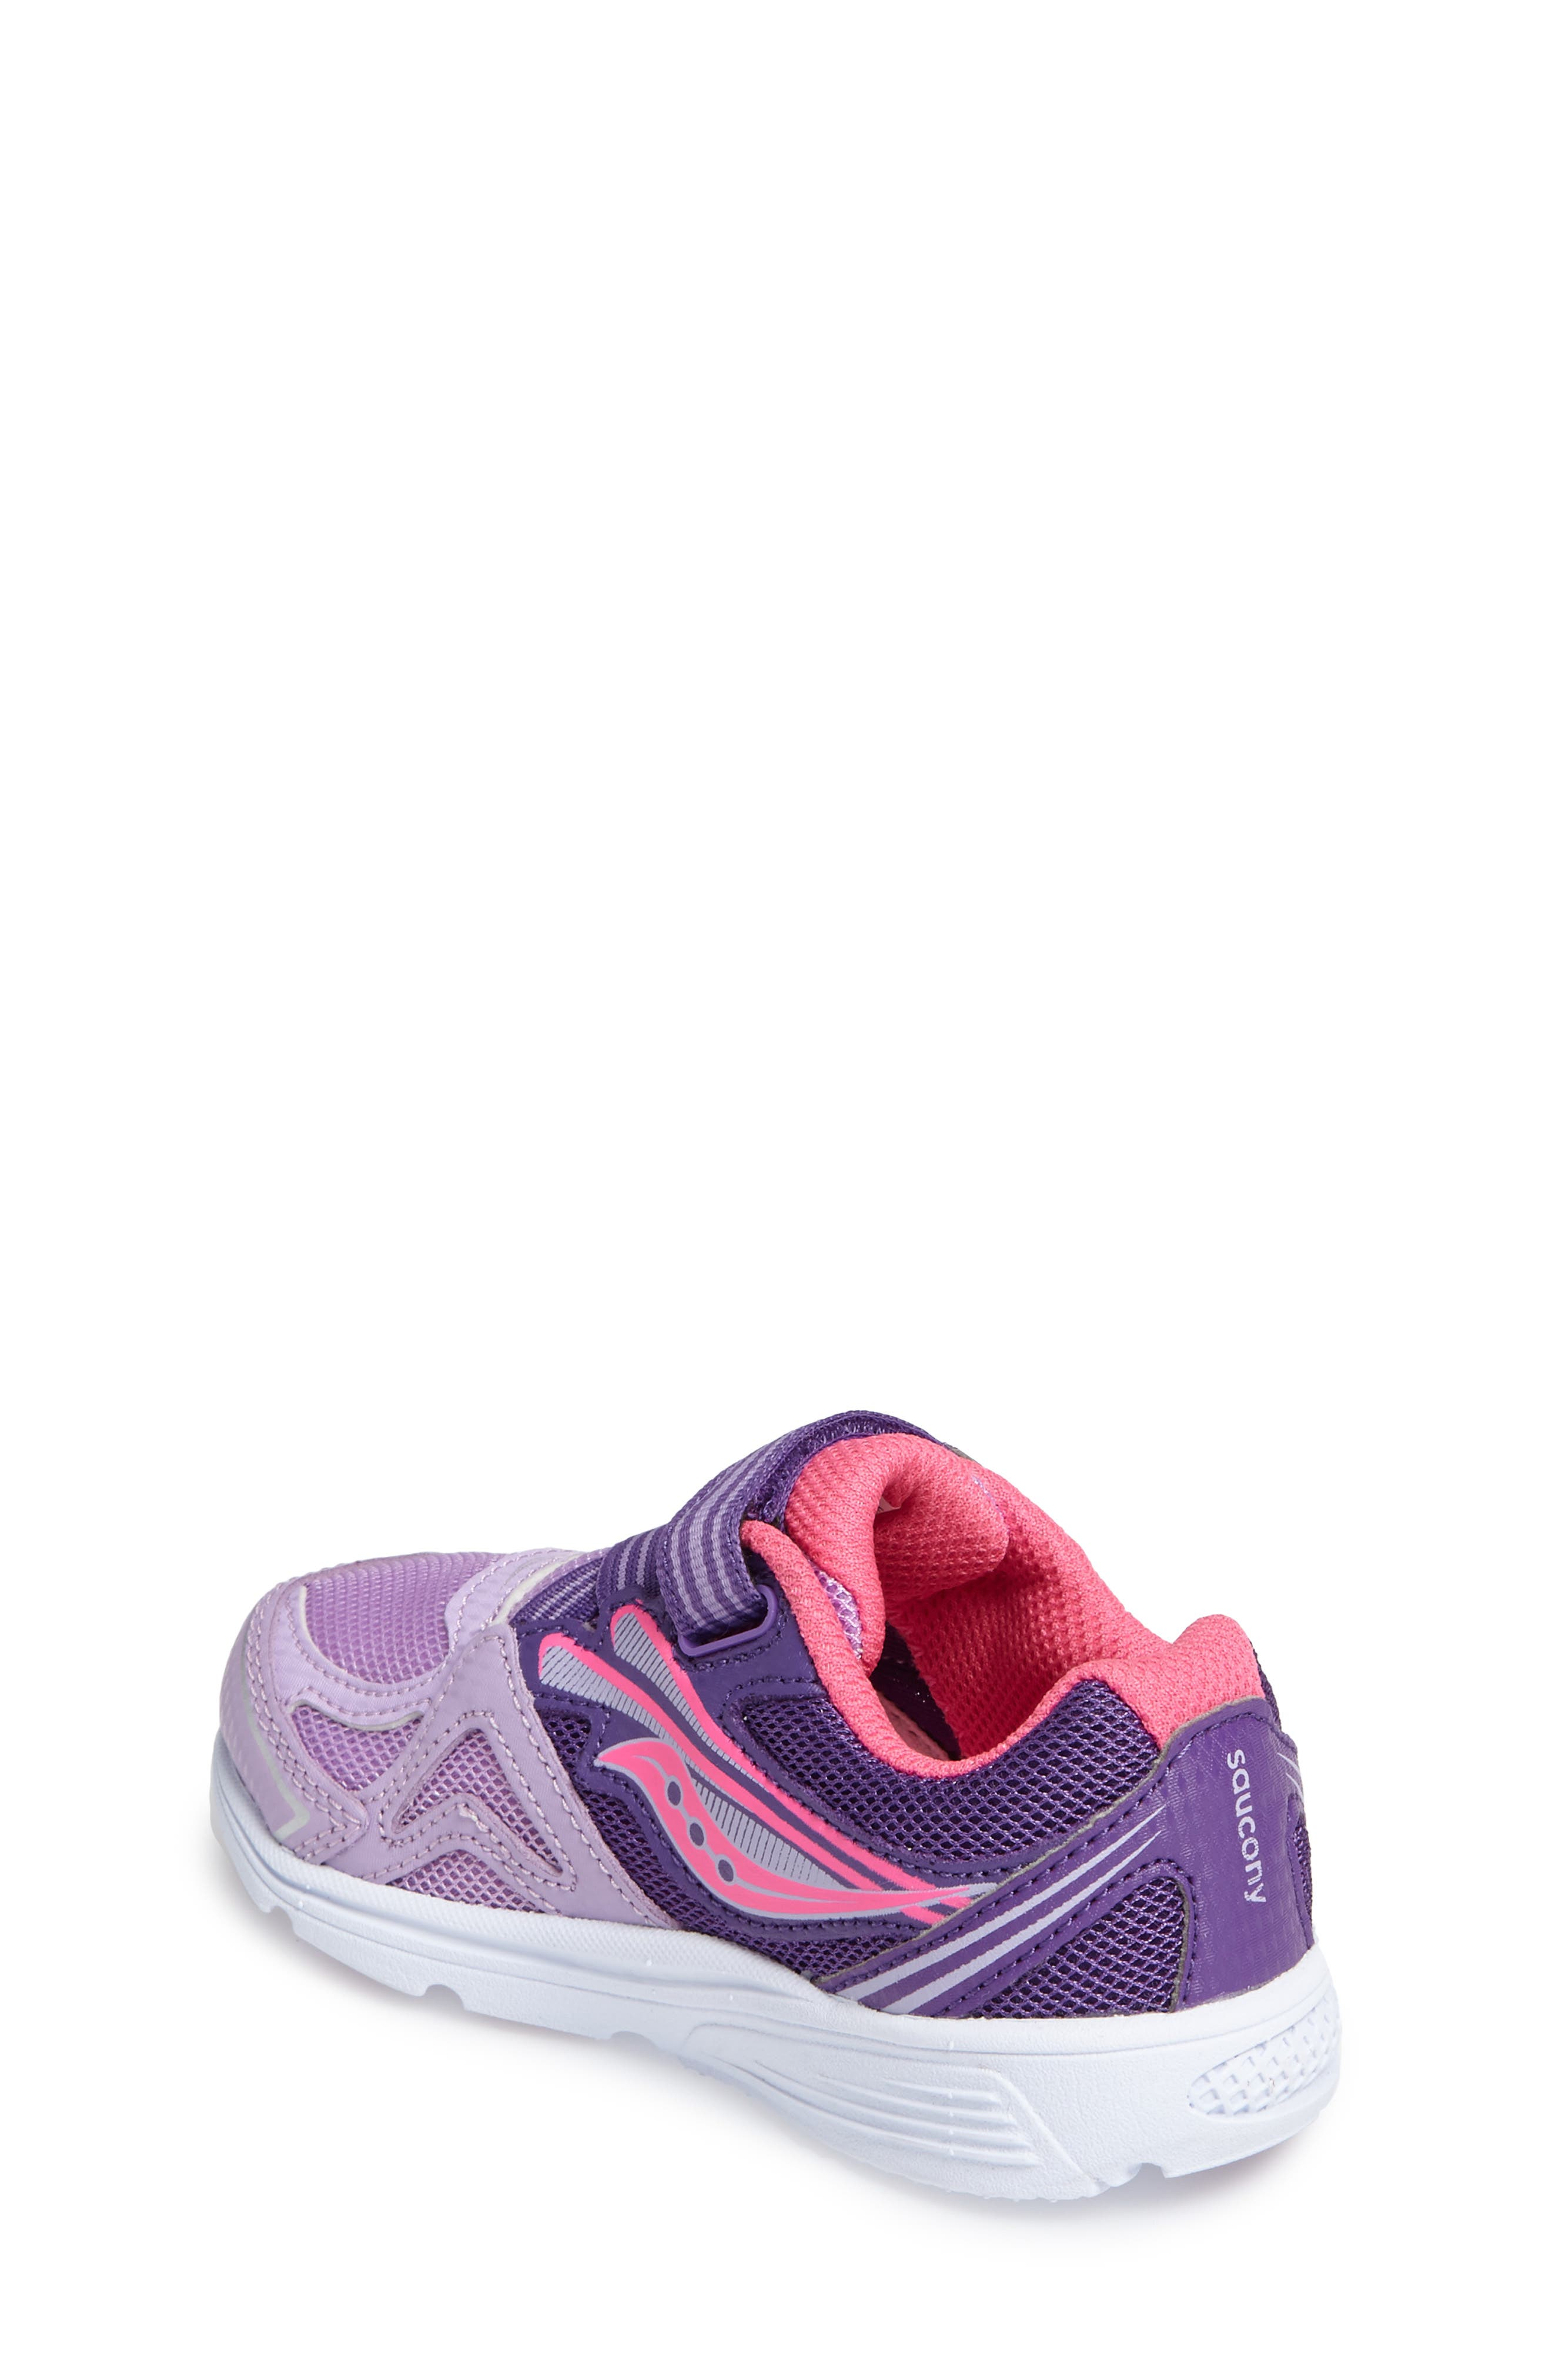 Baby Ride Sneaker,                             Alternate thumbnail 6, color,